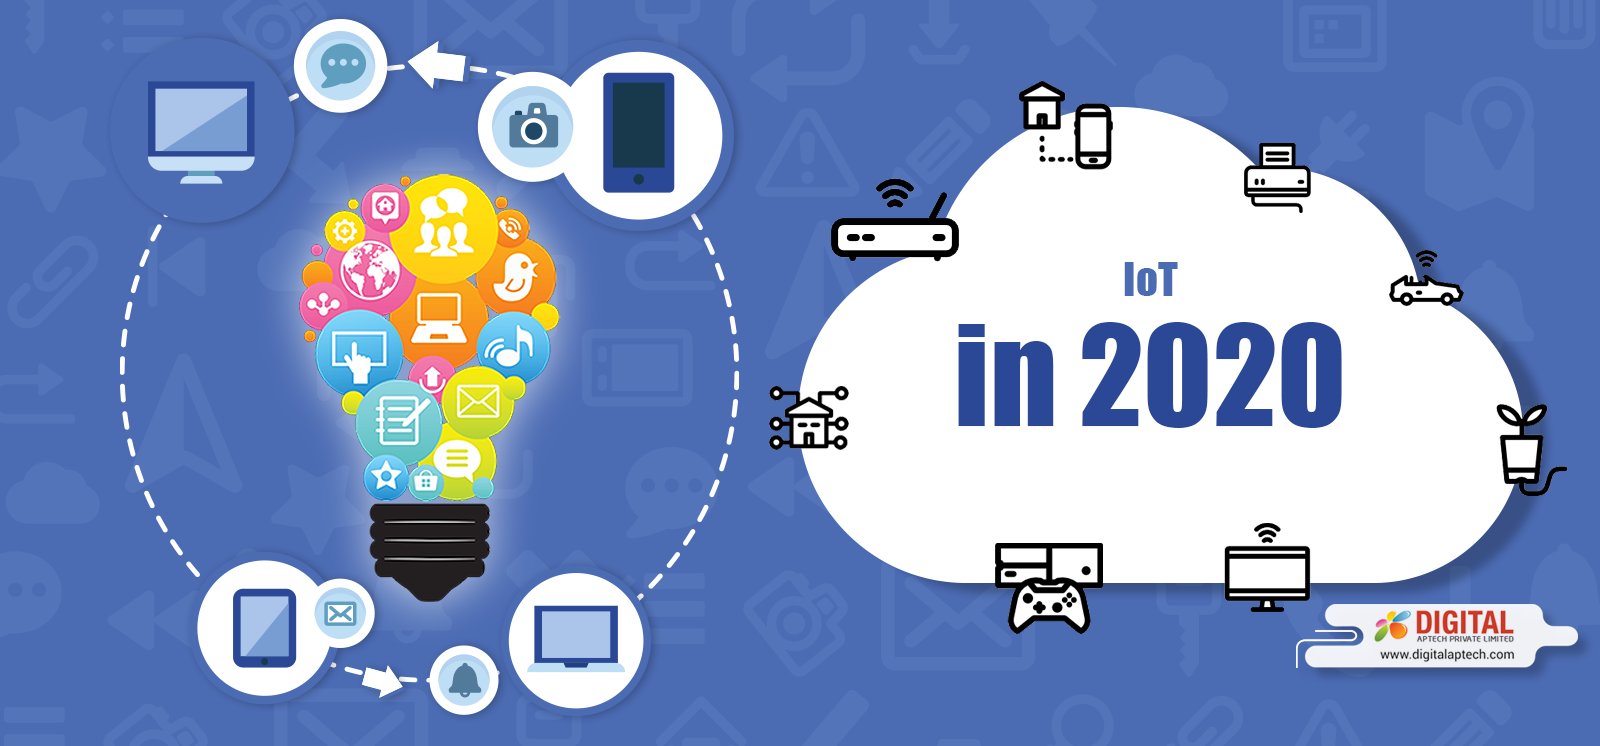 IoT in 2020: Top 5 Predictions